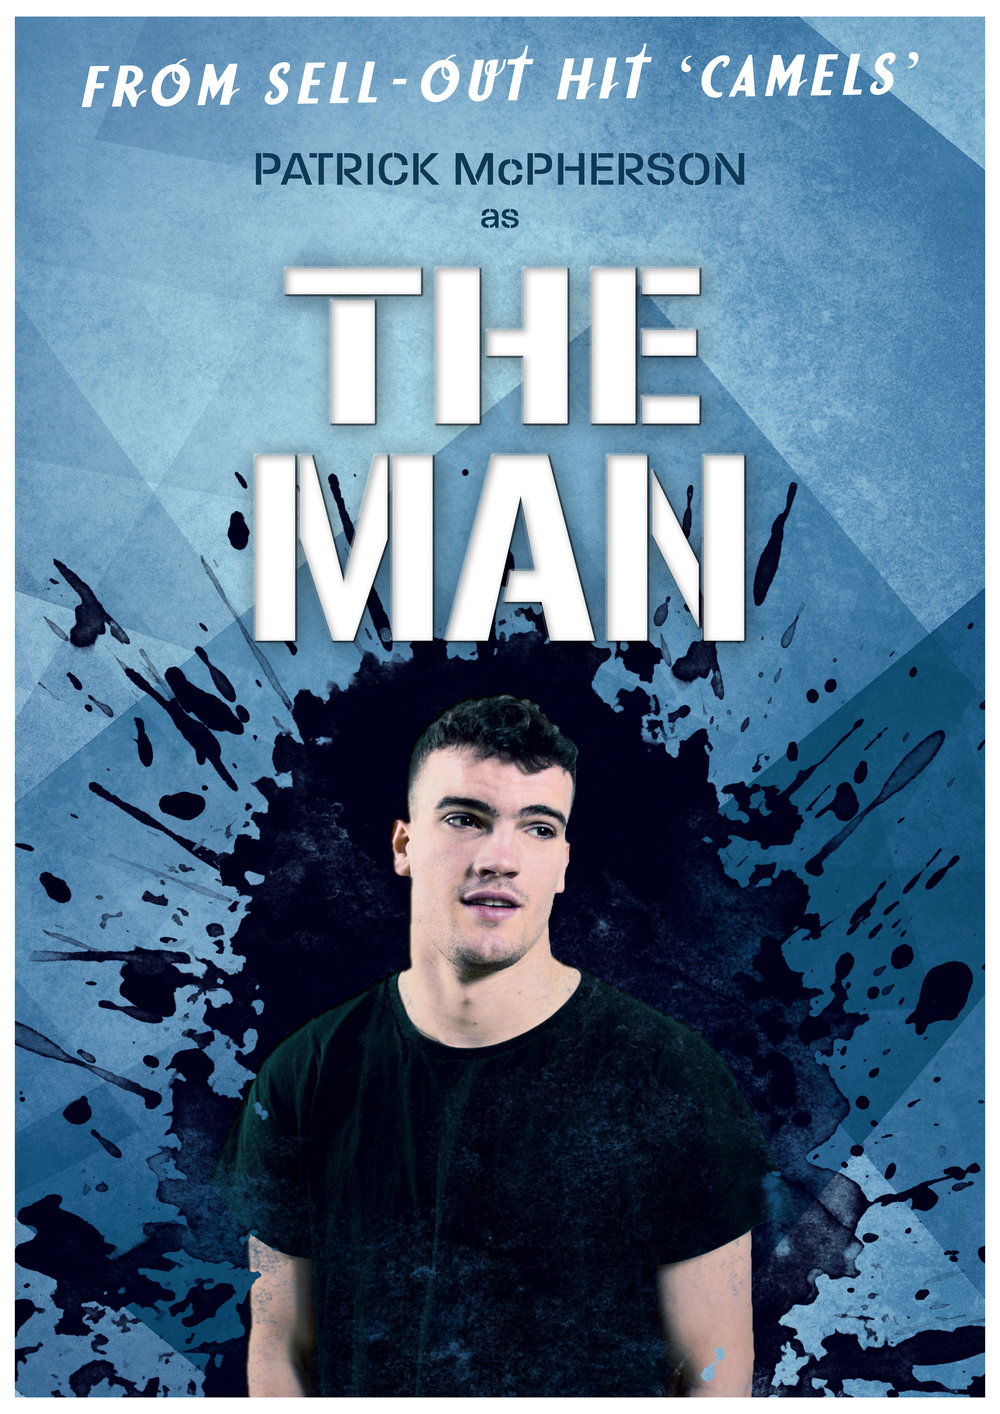 THE MAN - The team from Camels is back with a brand new show..Tristan Bates Theatre 11.03.2019Starring:Patrick McPhersonDirectors: James Lane and Matt JonesProducer: Zac PeelPhotography: Danté KimGraphics: James Lane